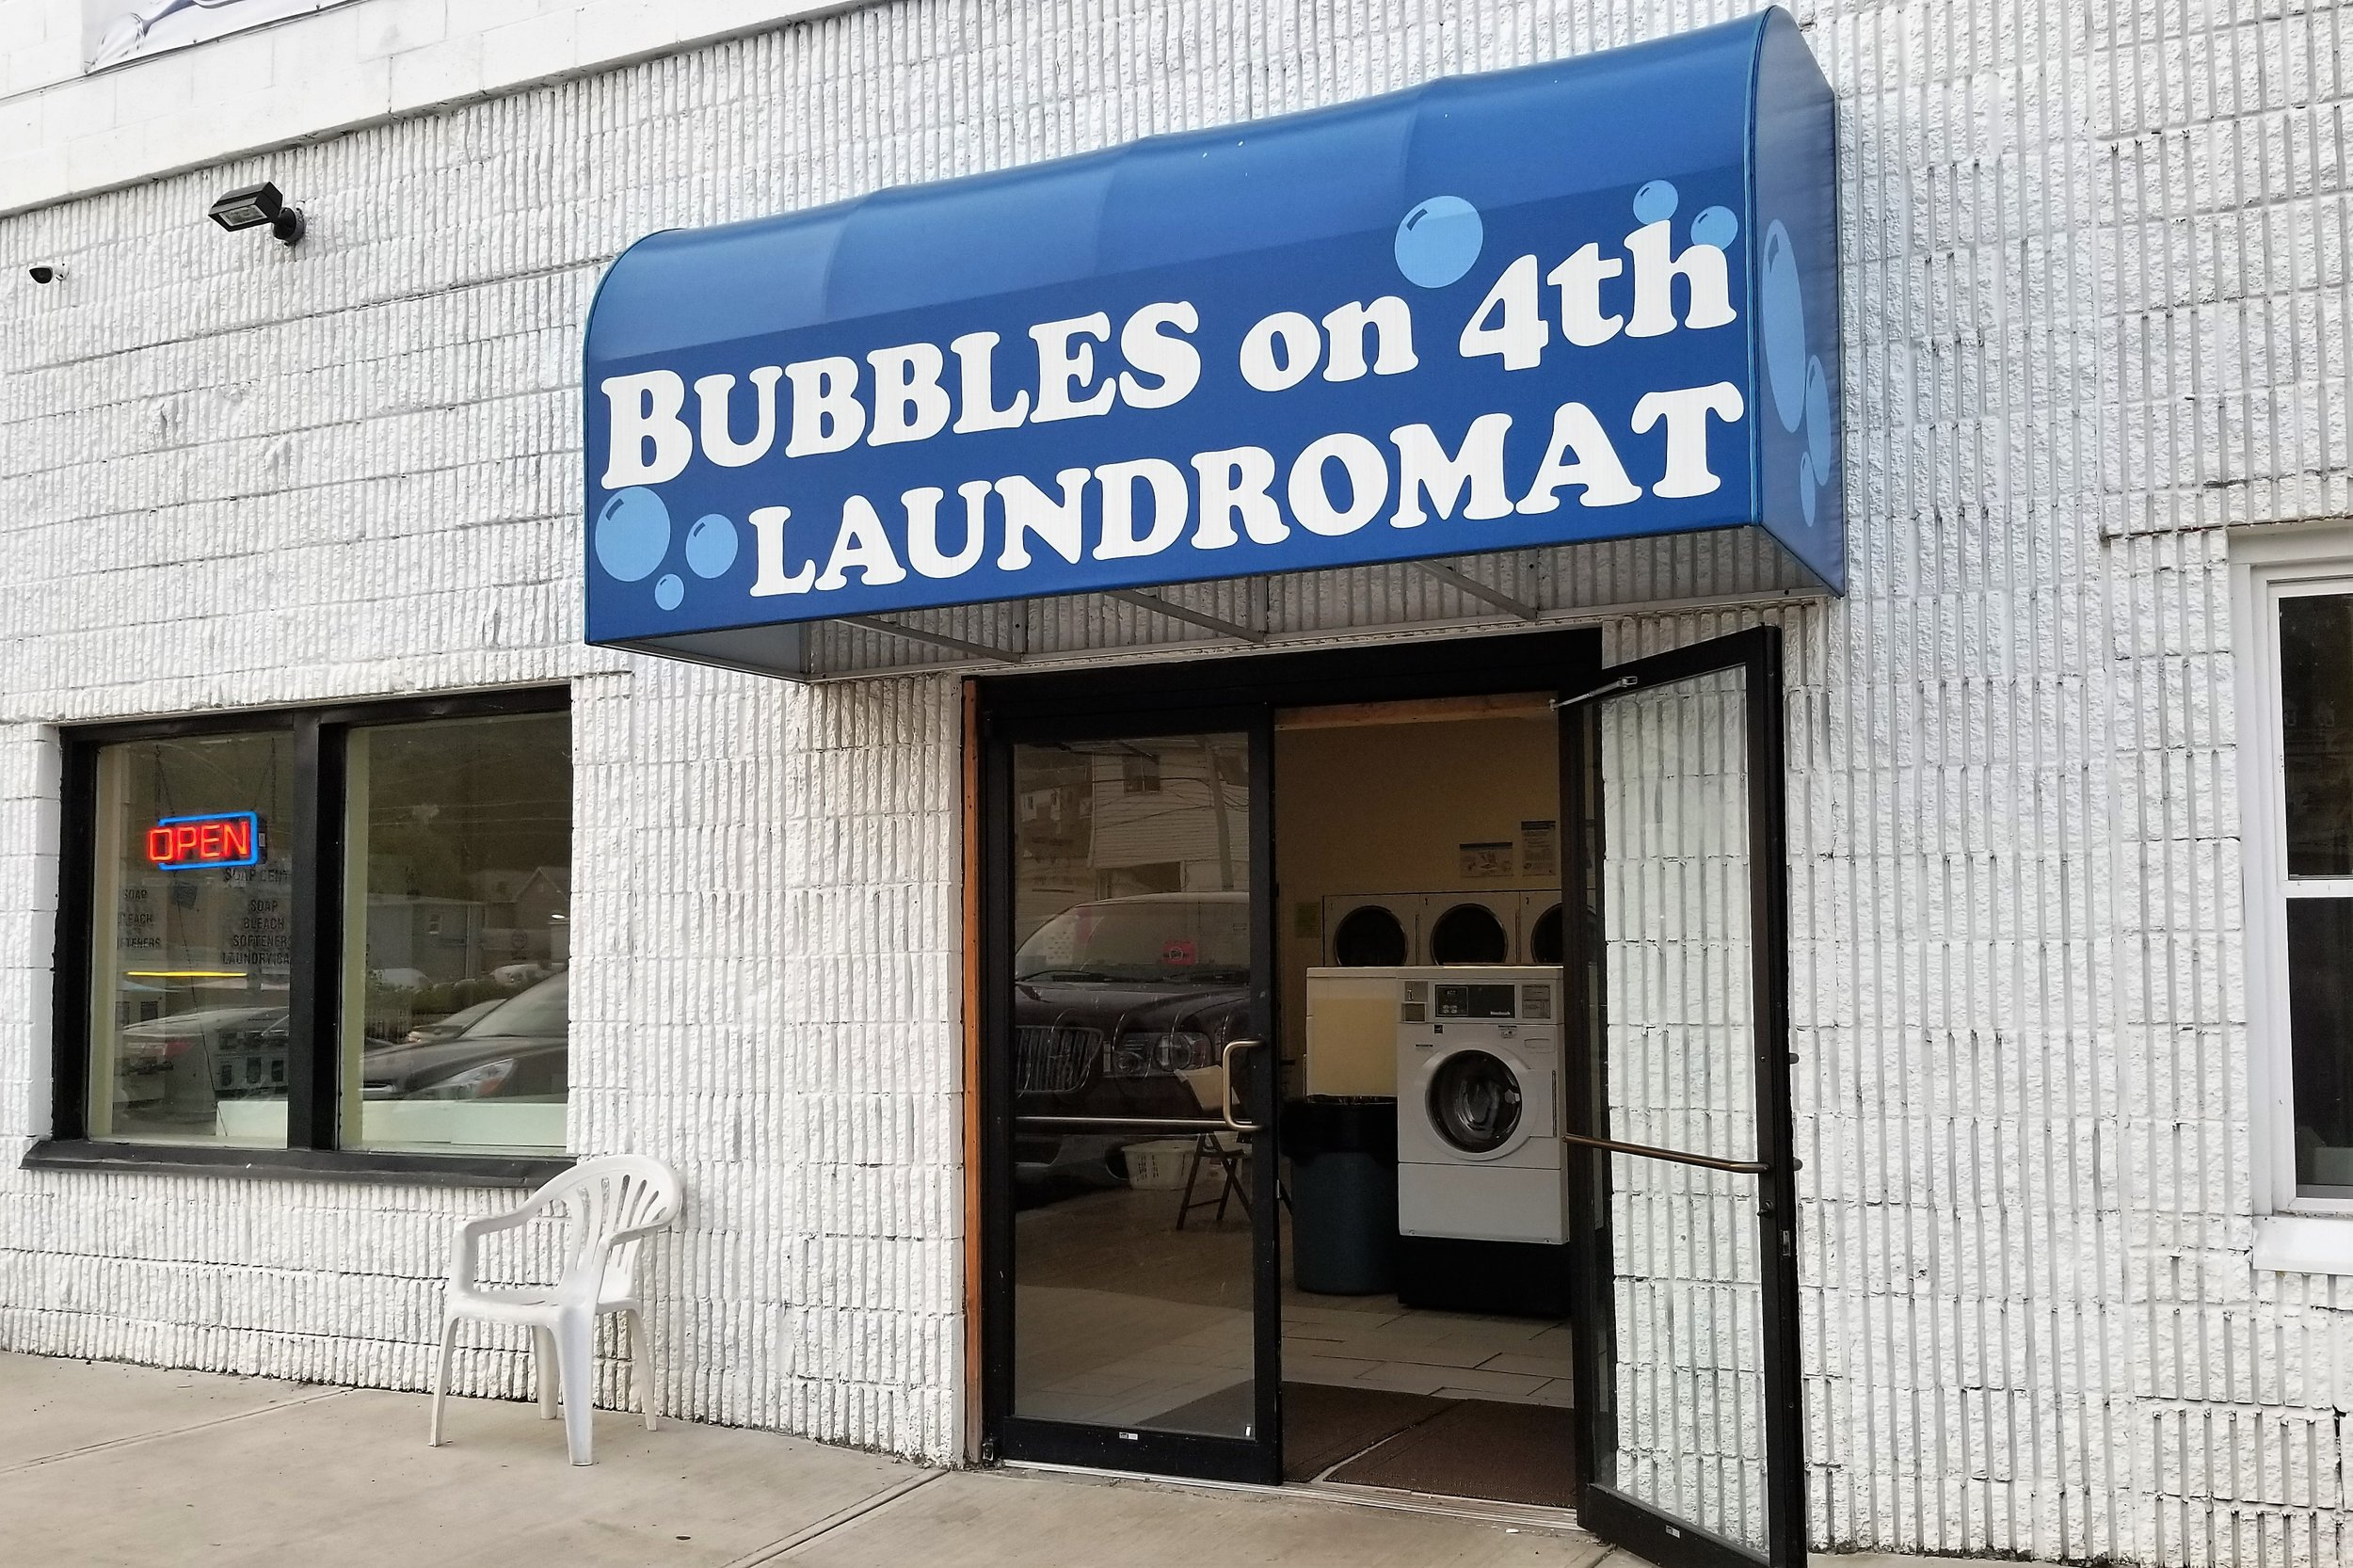 Bubbles on 4th Laundromat - 805 4th Ave, (412) 262-2731